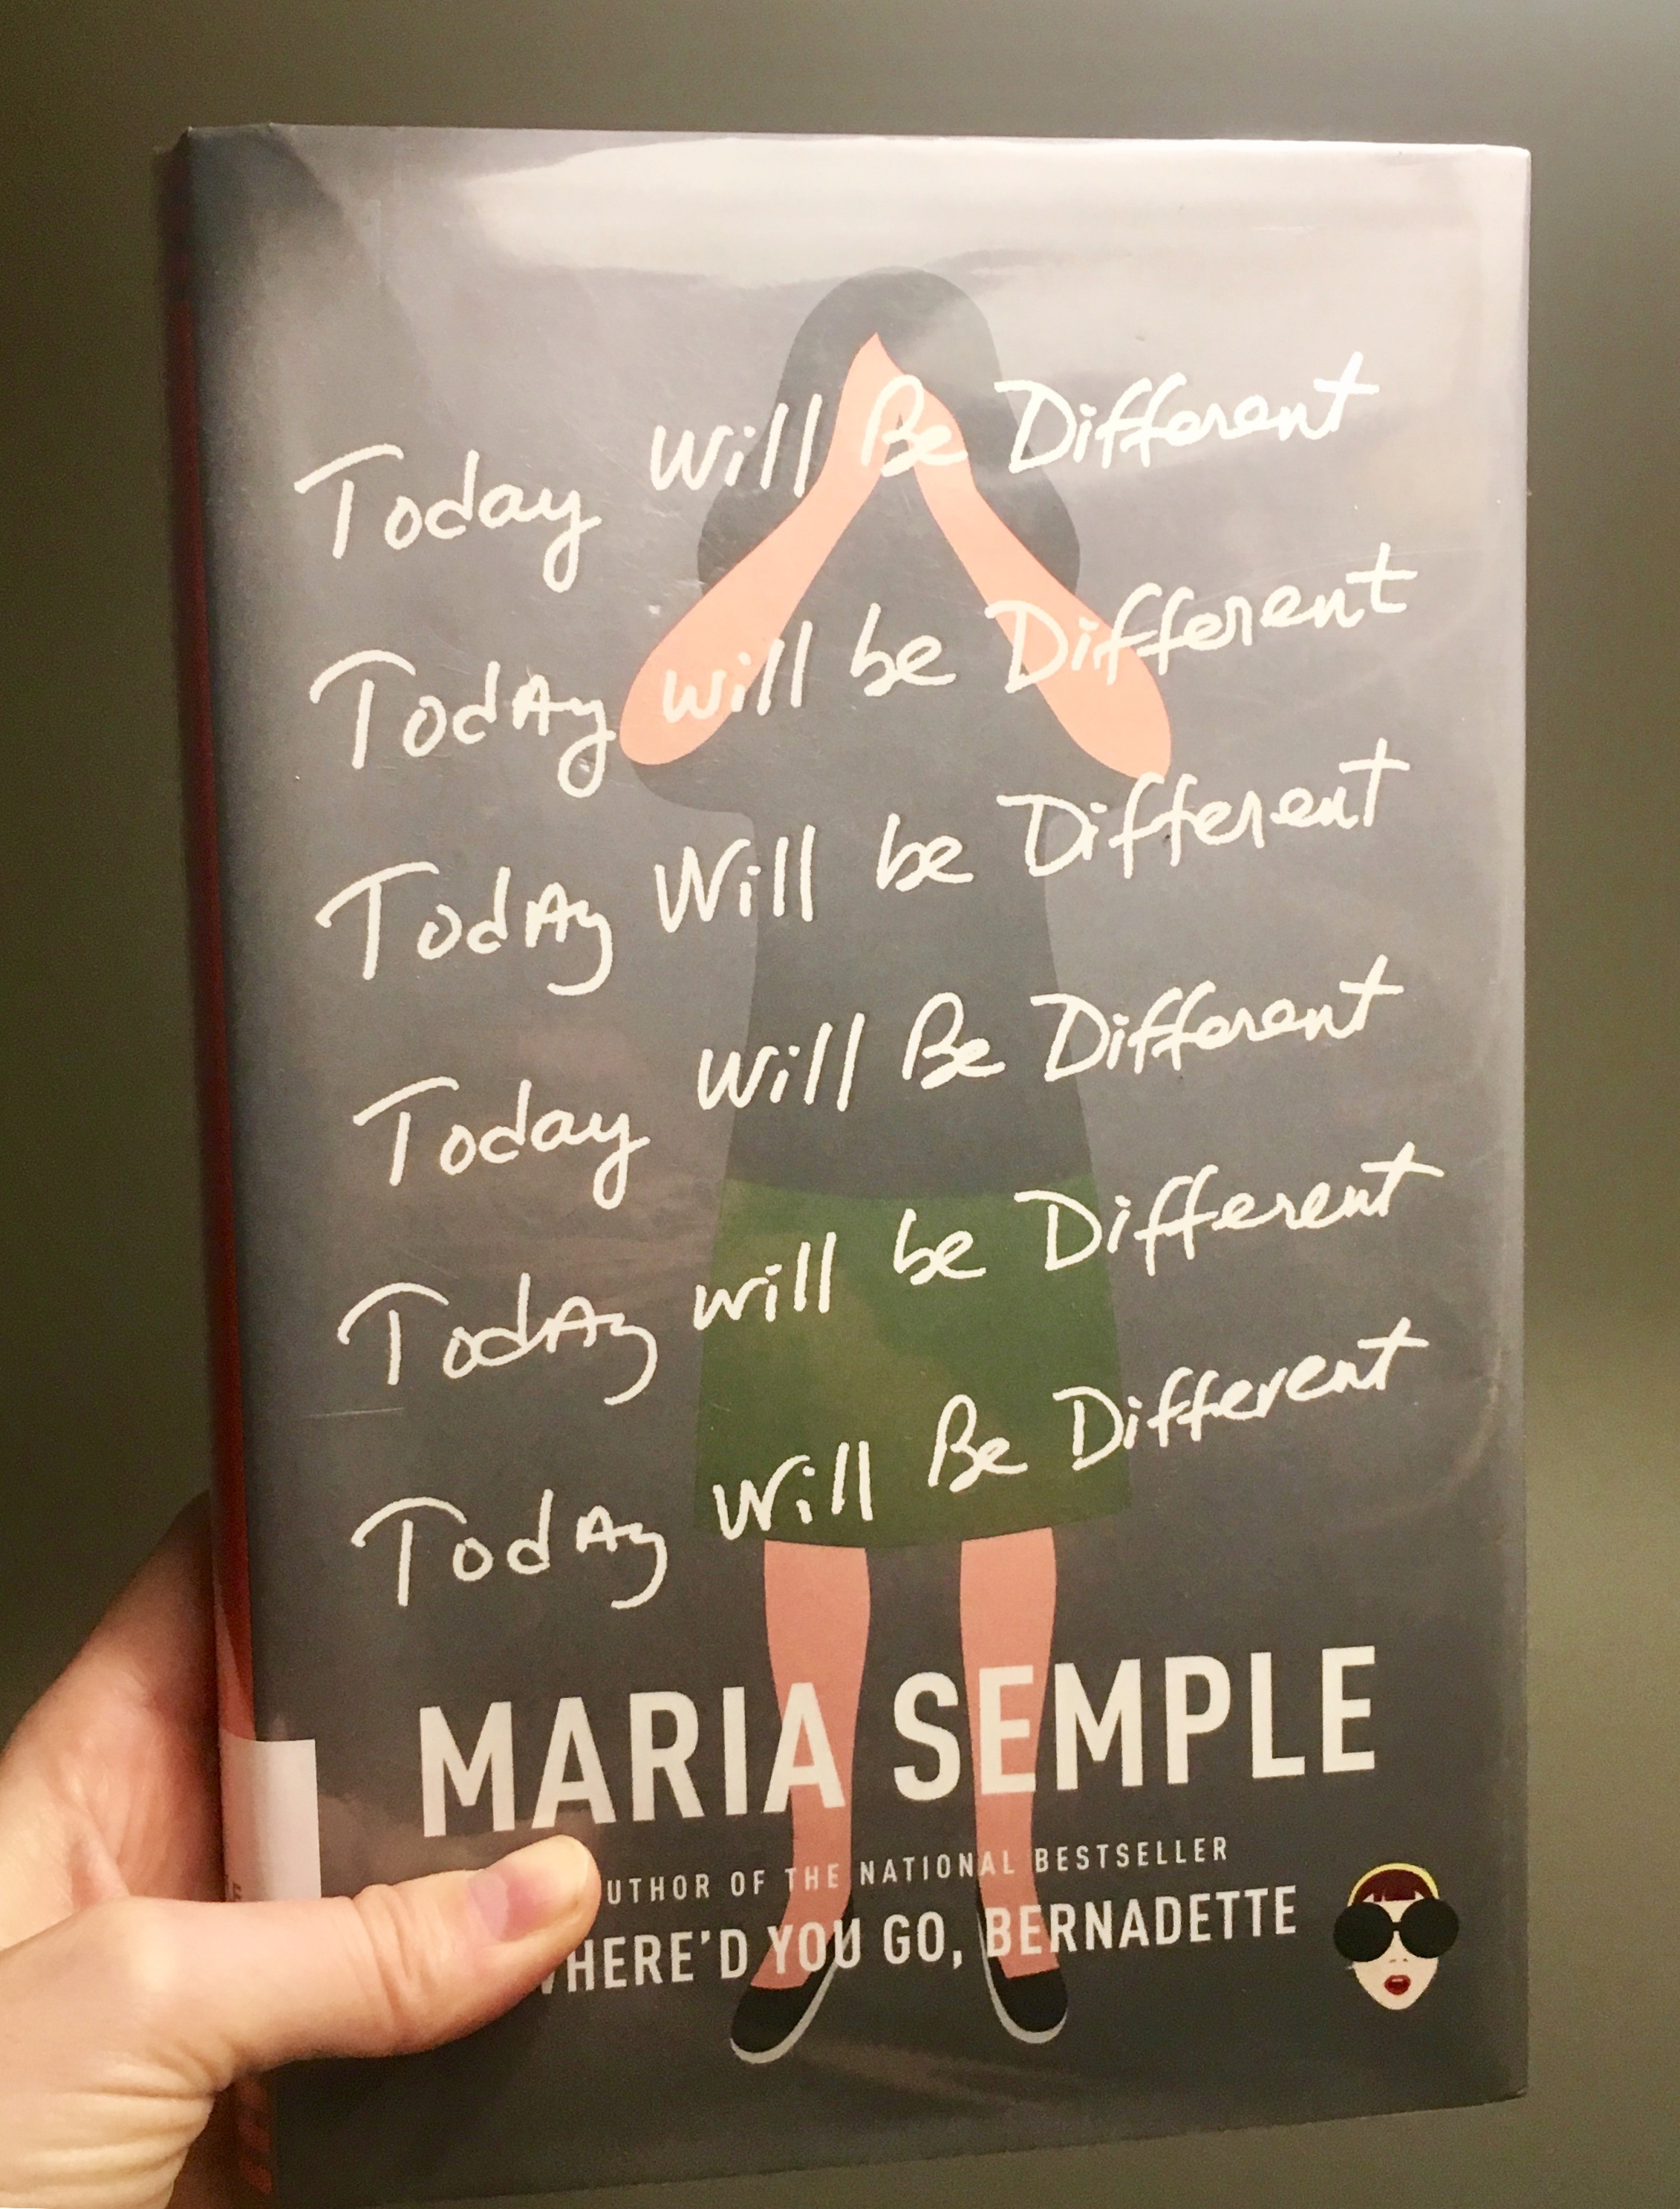 TODAY WILL BE DIFFERENT - by Maria Semple